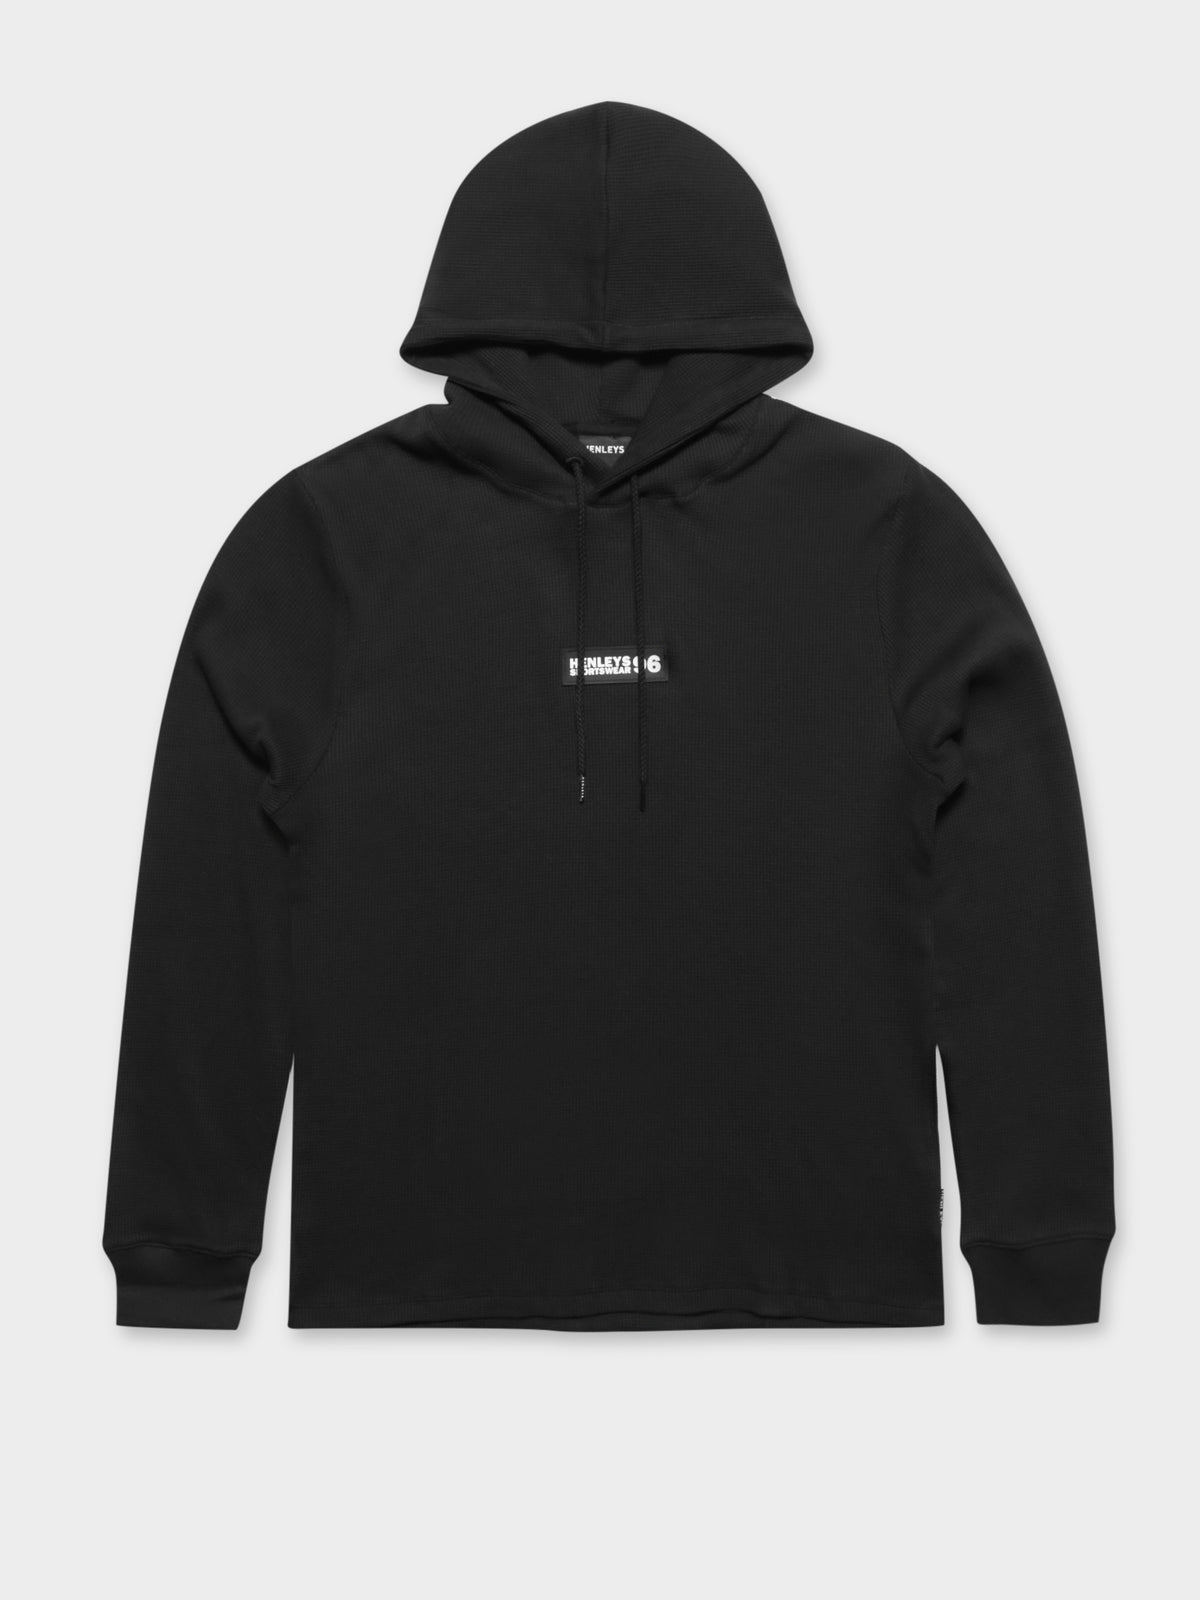 Newman Long Sleeve Hooded T-Shirt in Black